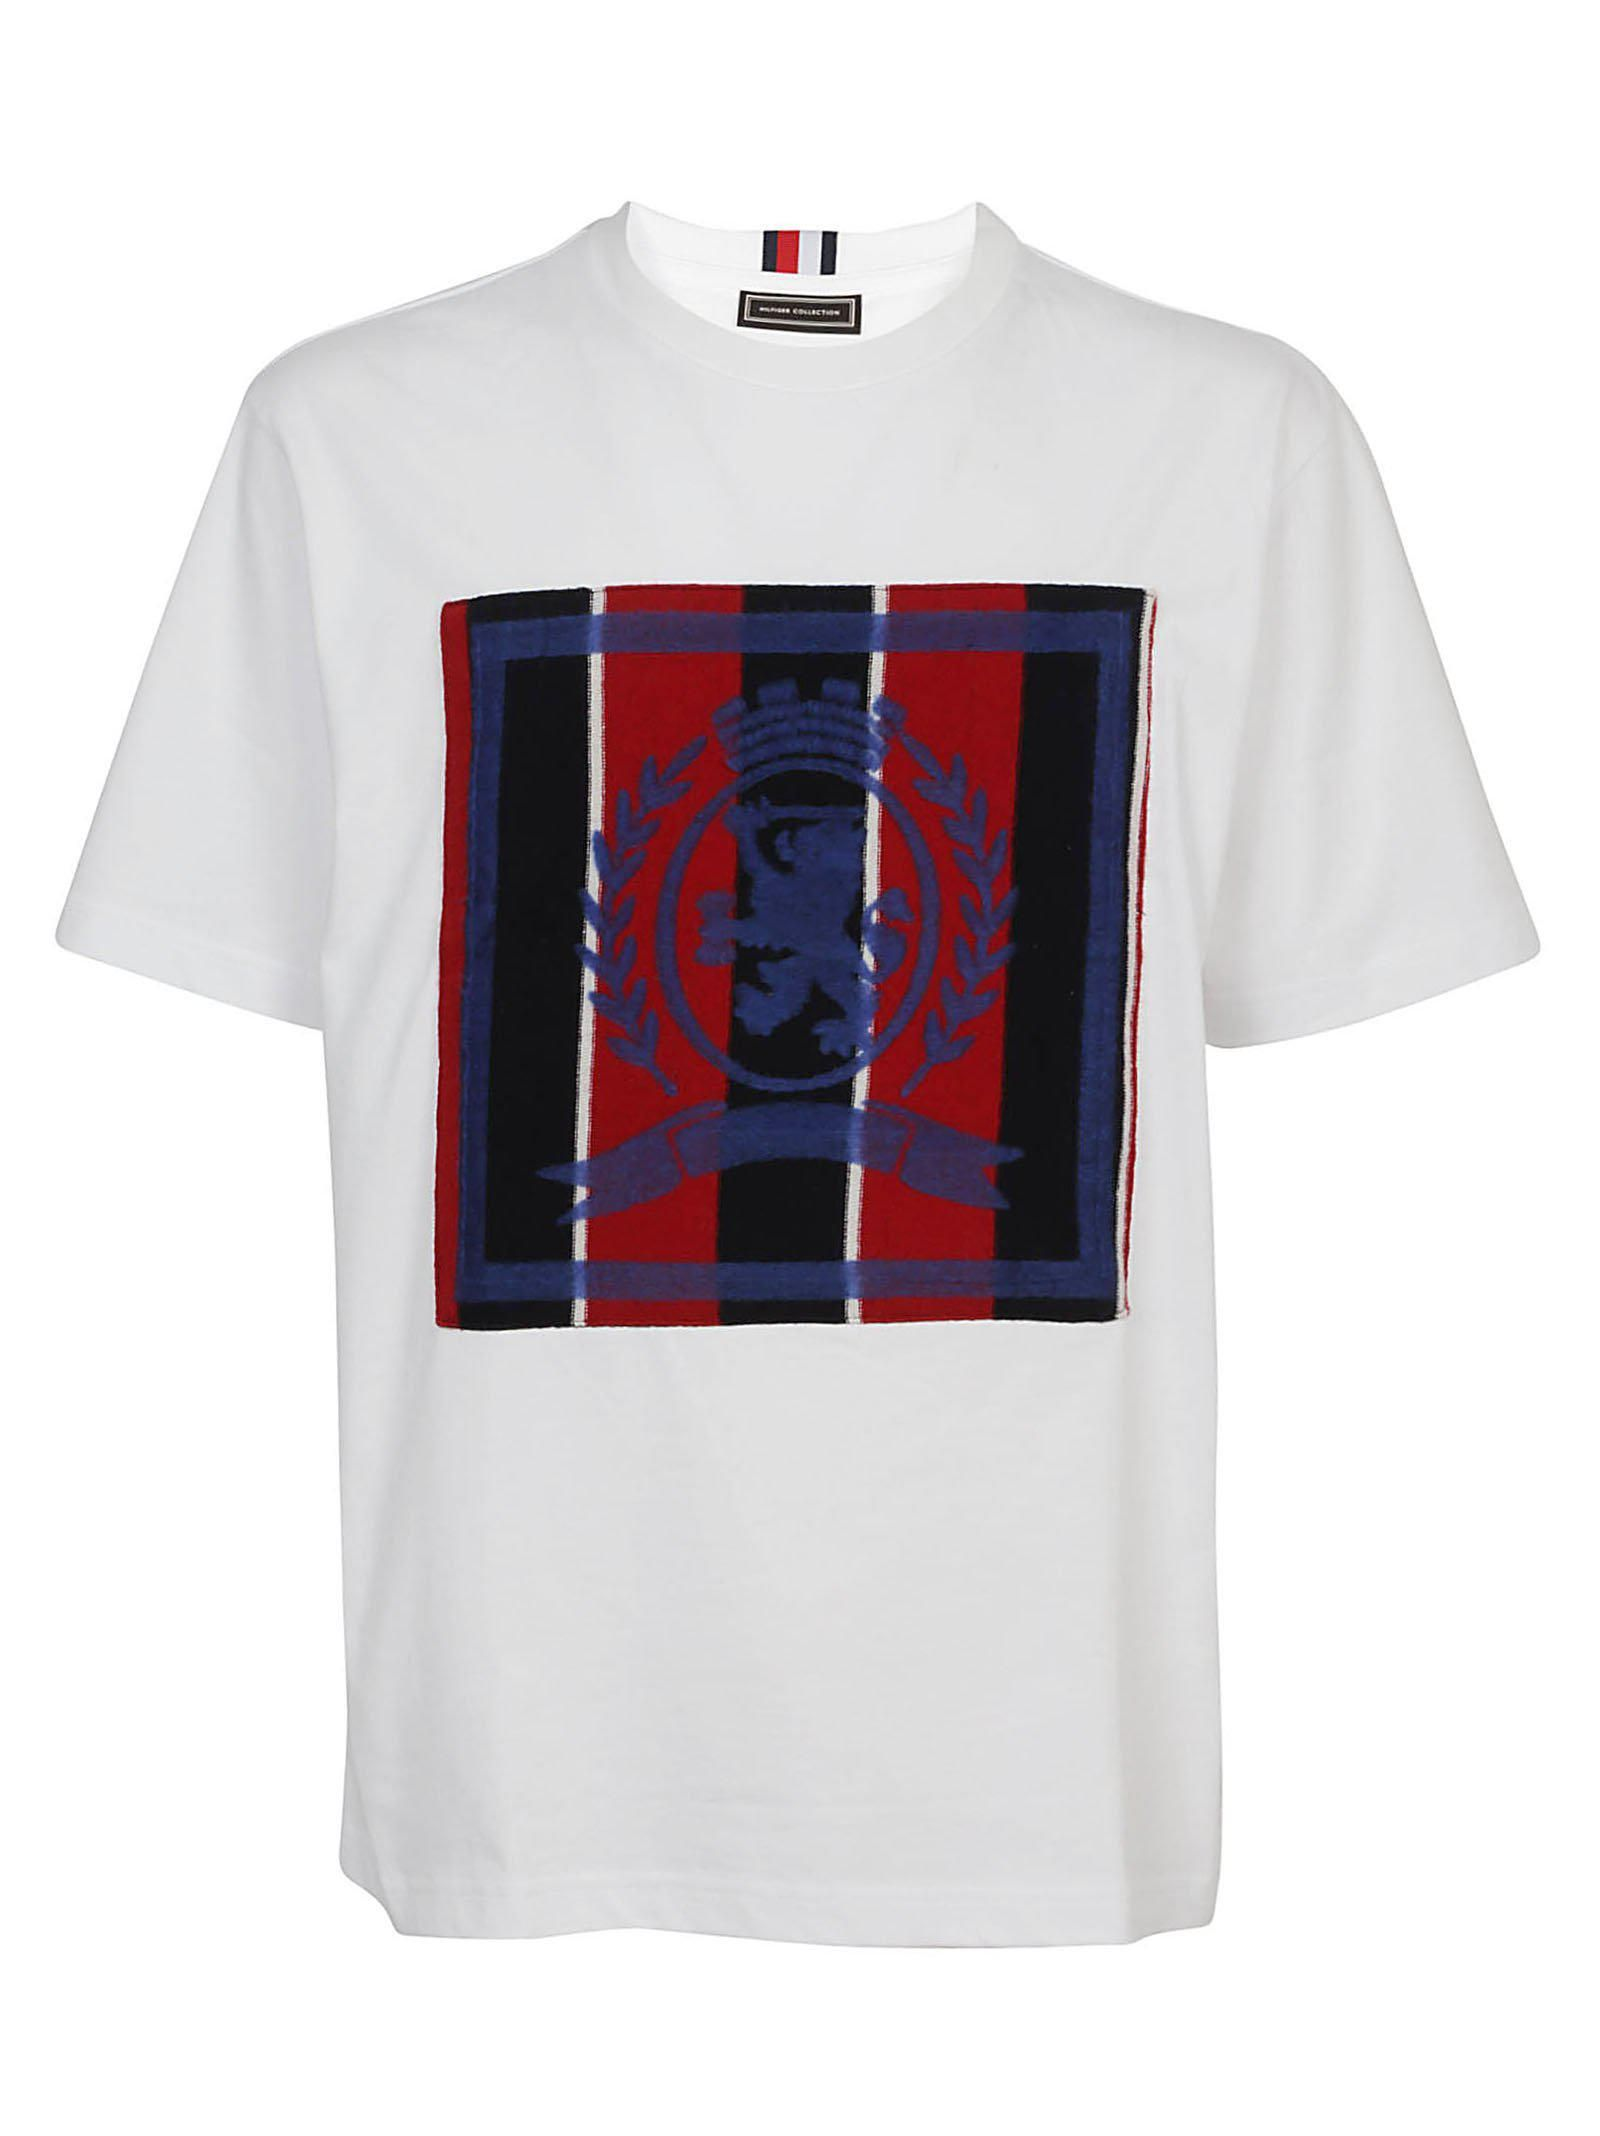 Blue and White Brand Logo - Tommy Hilfiger Brand Logo T-shirt in White for Men - Lyst